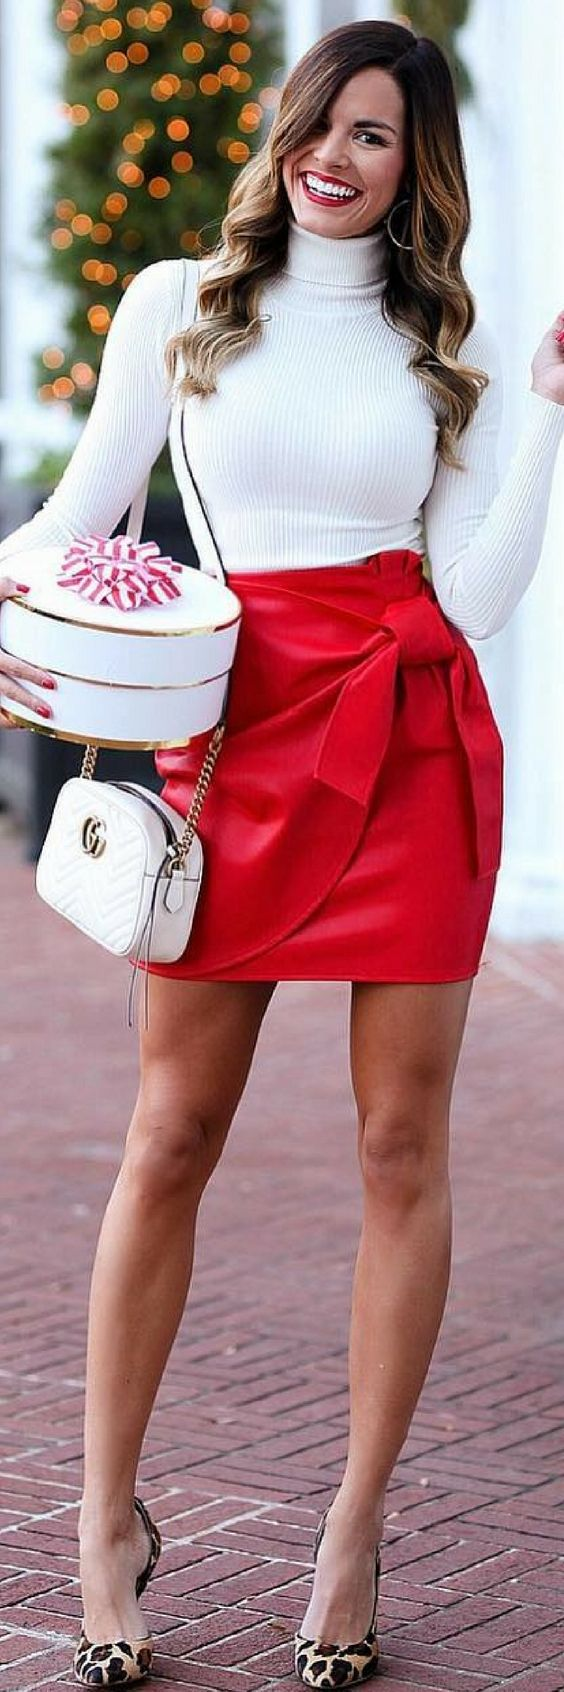 11 Of The Most Irresistible Winter Outfits For 2018 https://ecstasymodels.blog/2017/12/21/11-irresistible-winter-outfits-2018/